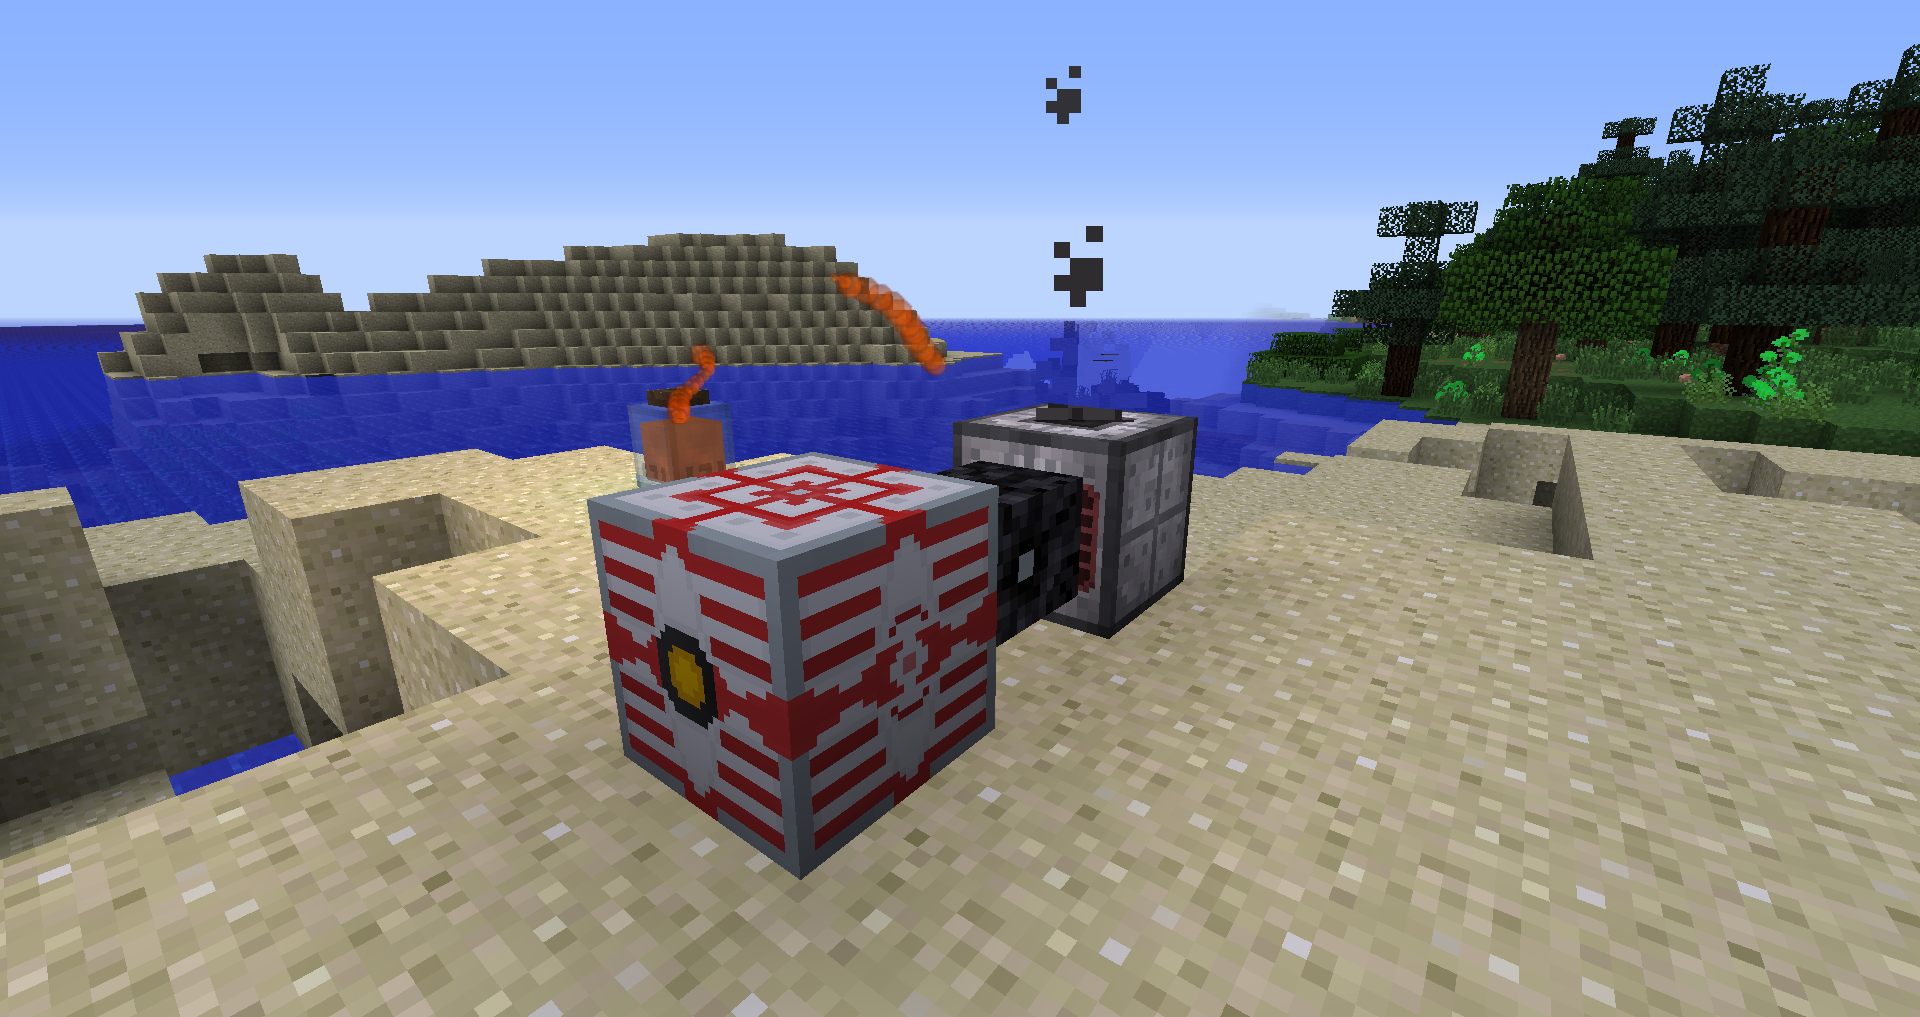 This is how I have the generator set up.